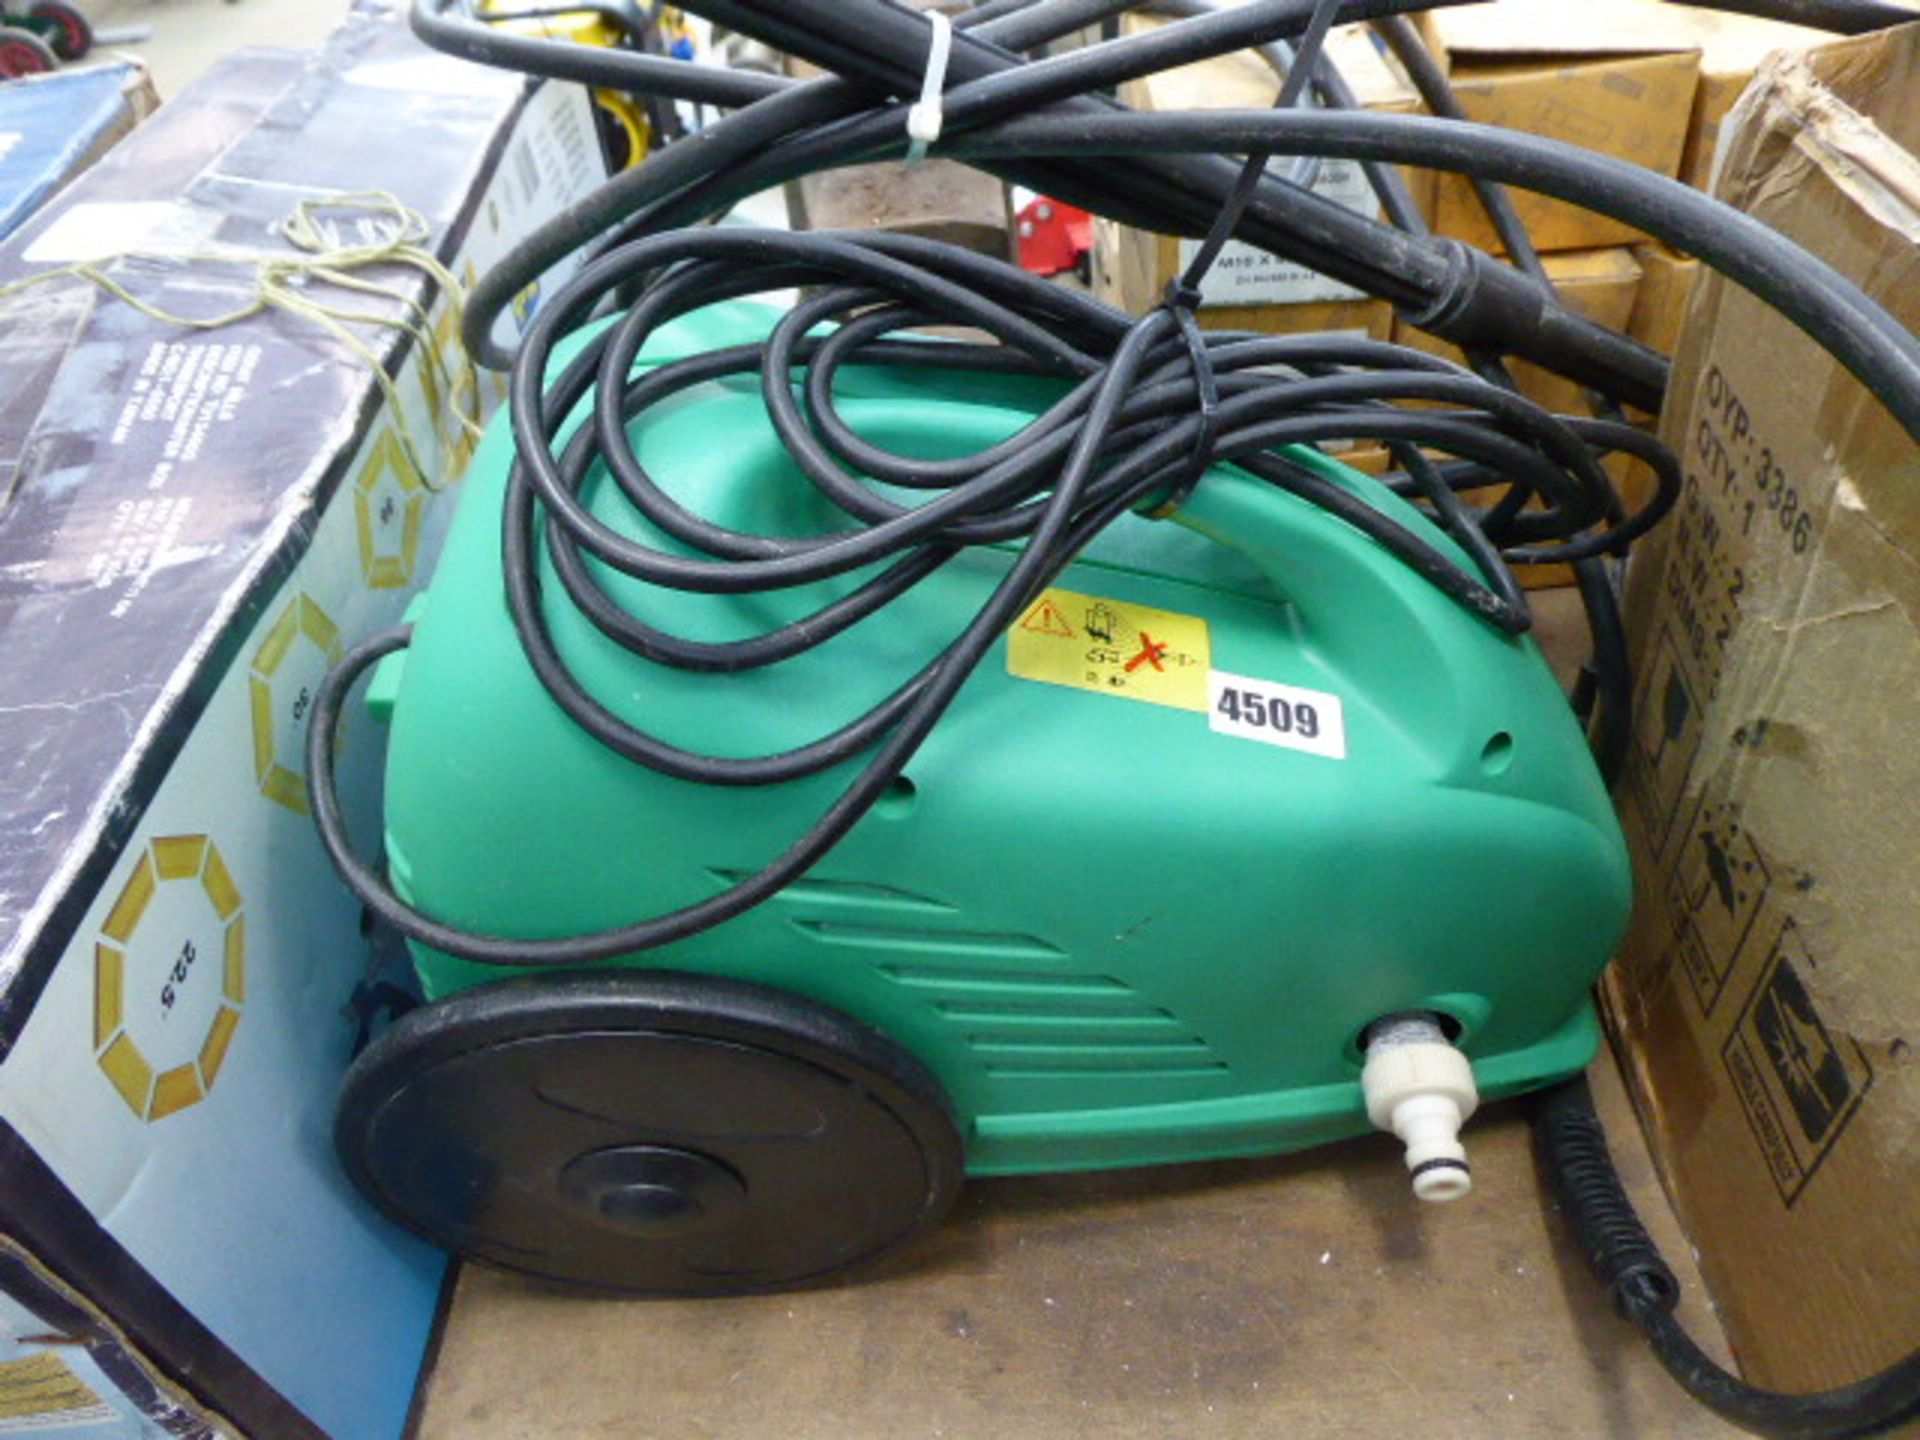 Lot 4509 - Small green pressure washer